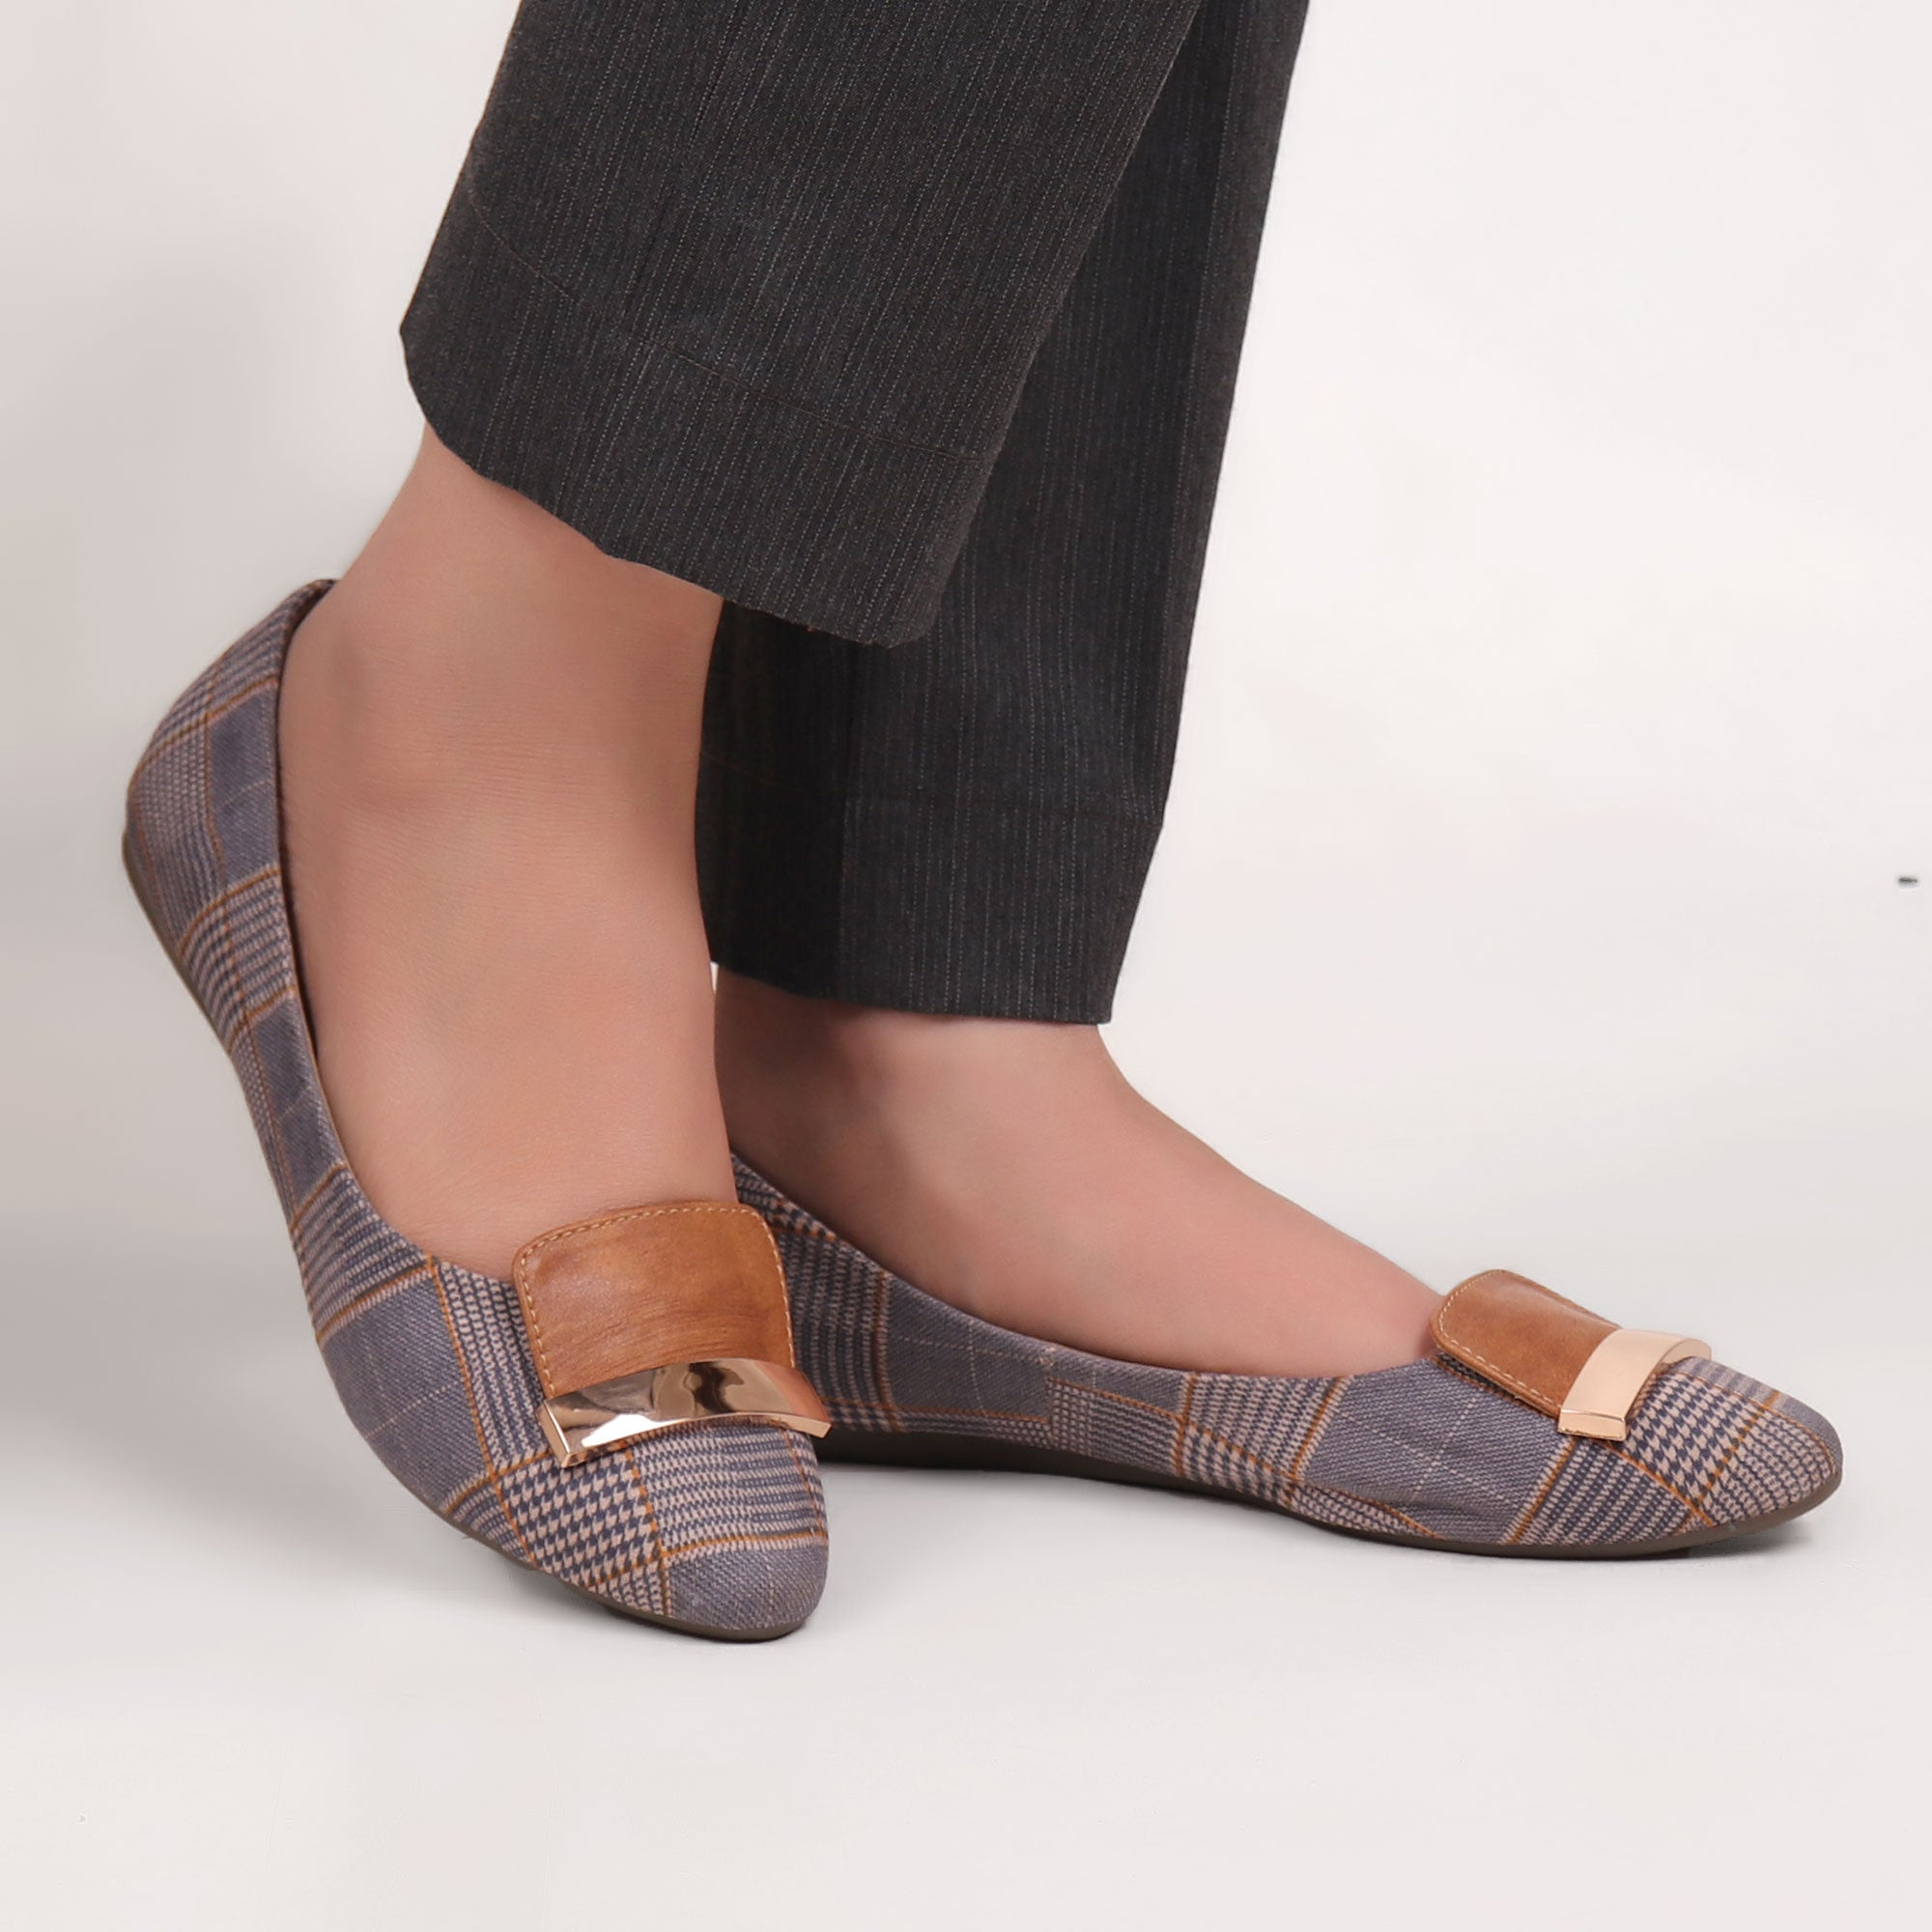 Foot Wear,Metal Strap Check Me Flats - Cippele Multi Store